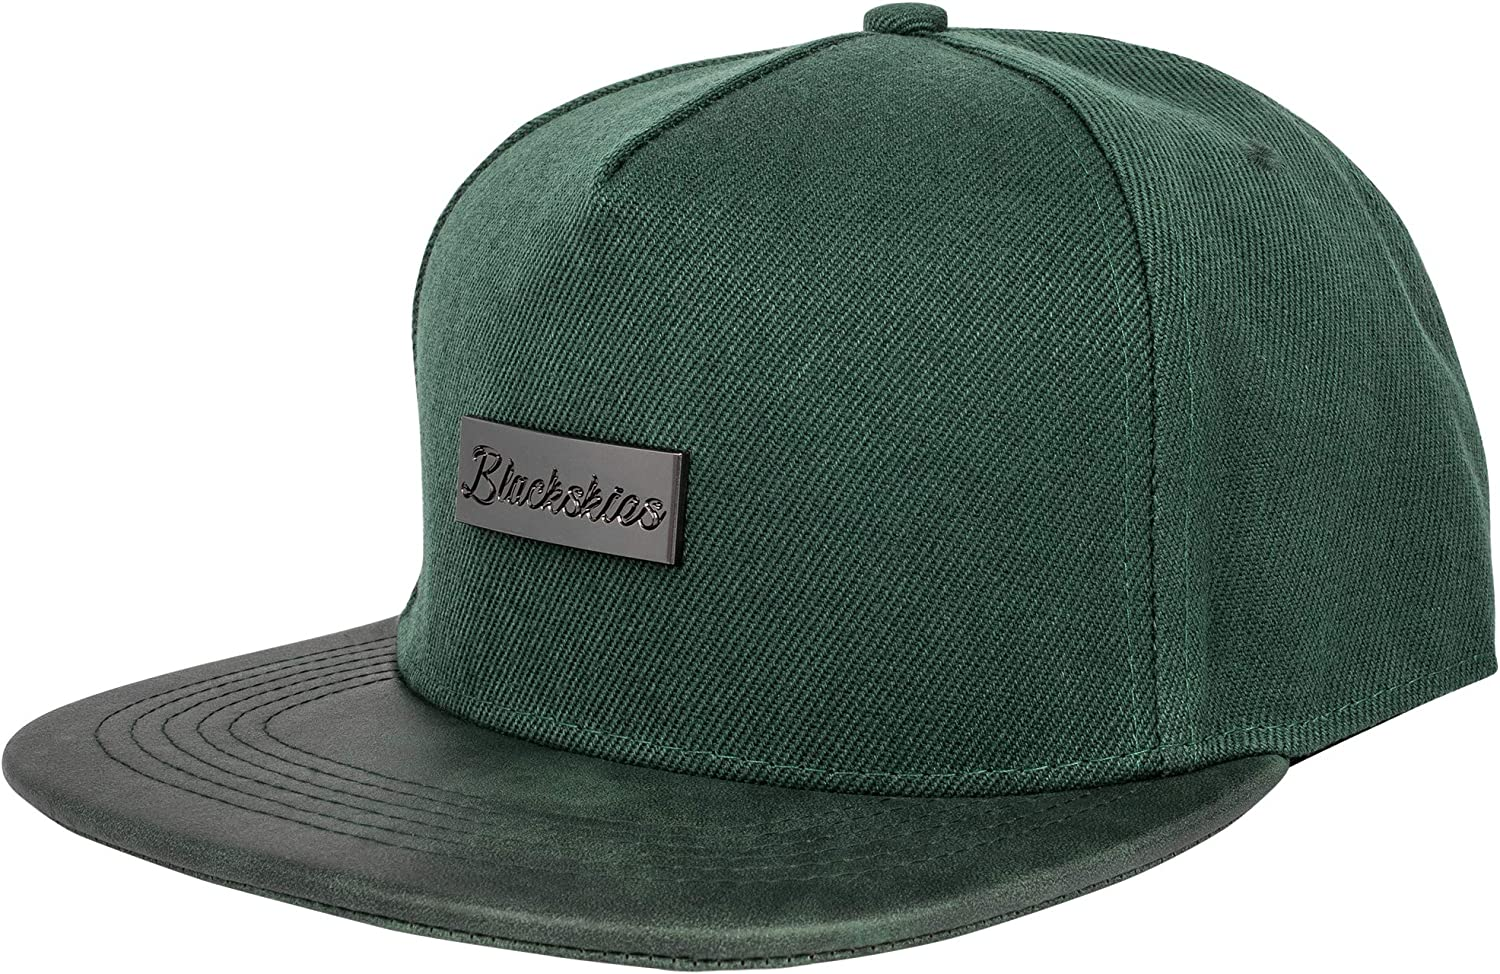 Hat Berretto da Baseball Classic Hip Hop Uomo Donna 5-Panel Cappello Estivo Pelle Blackskies Vanguard Snapback cap